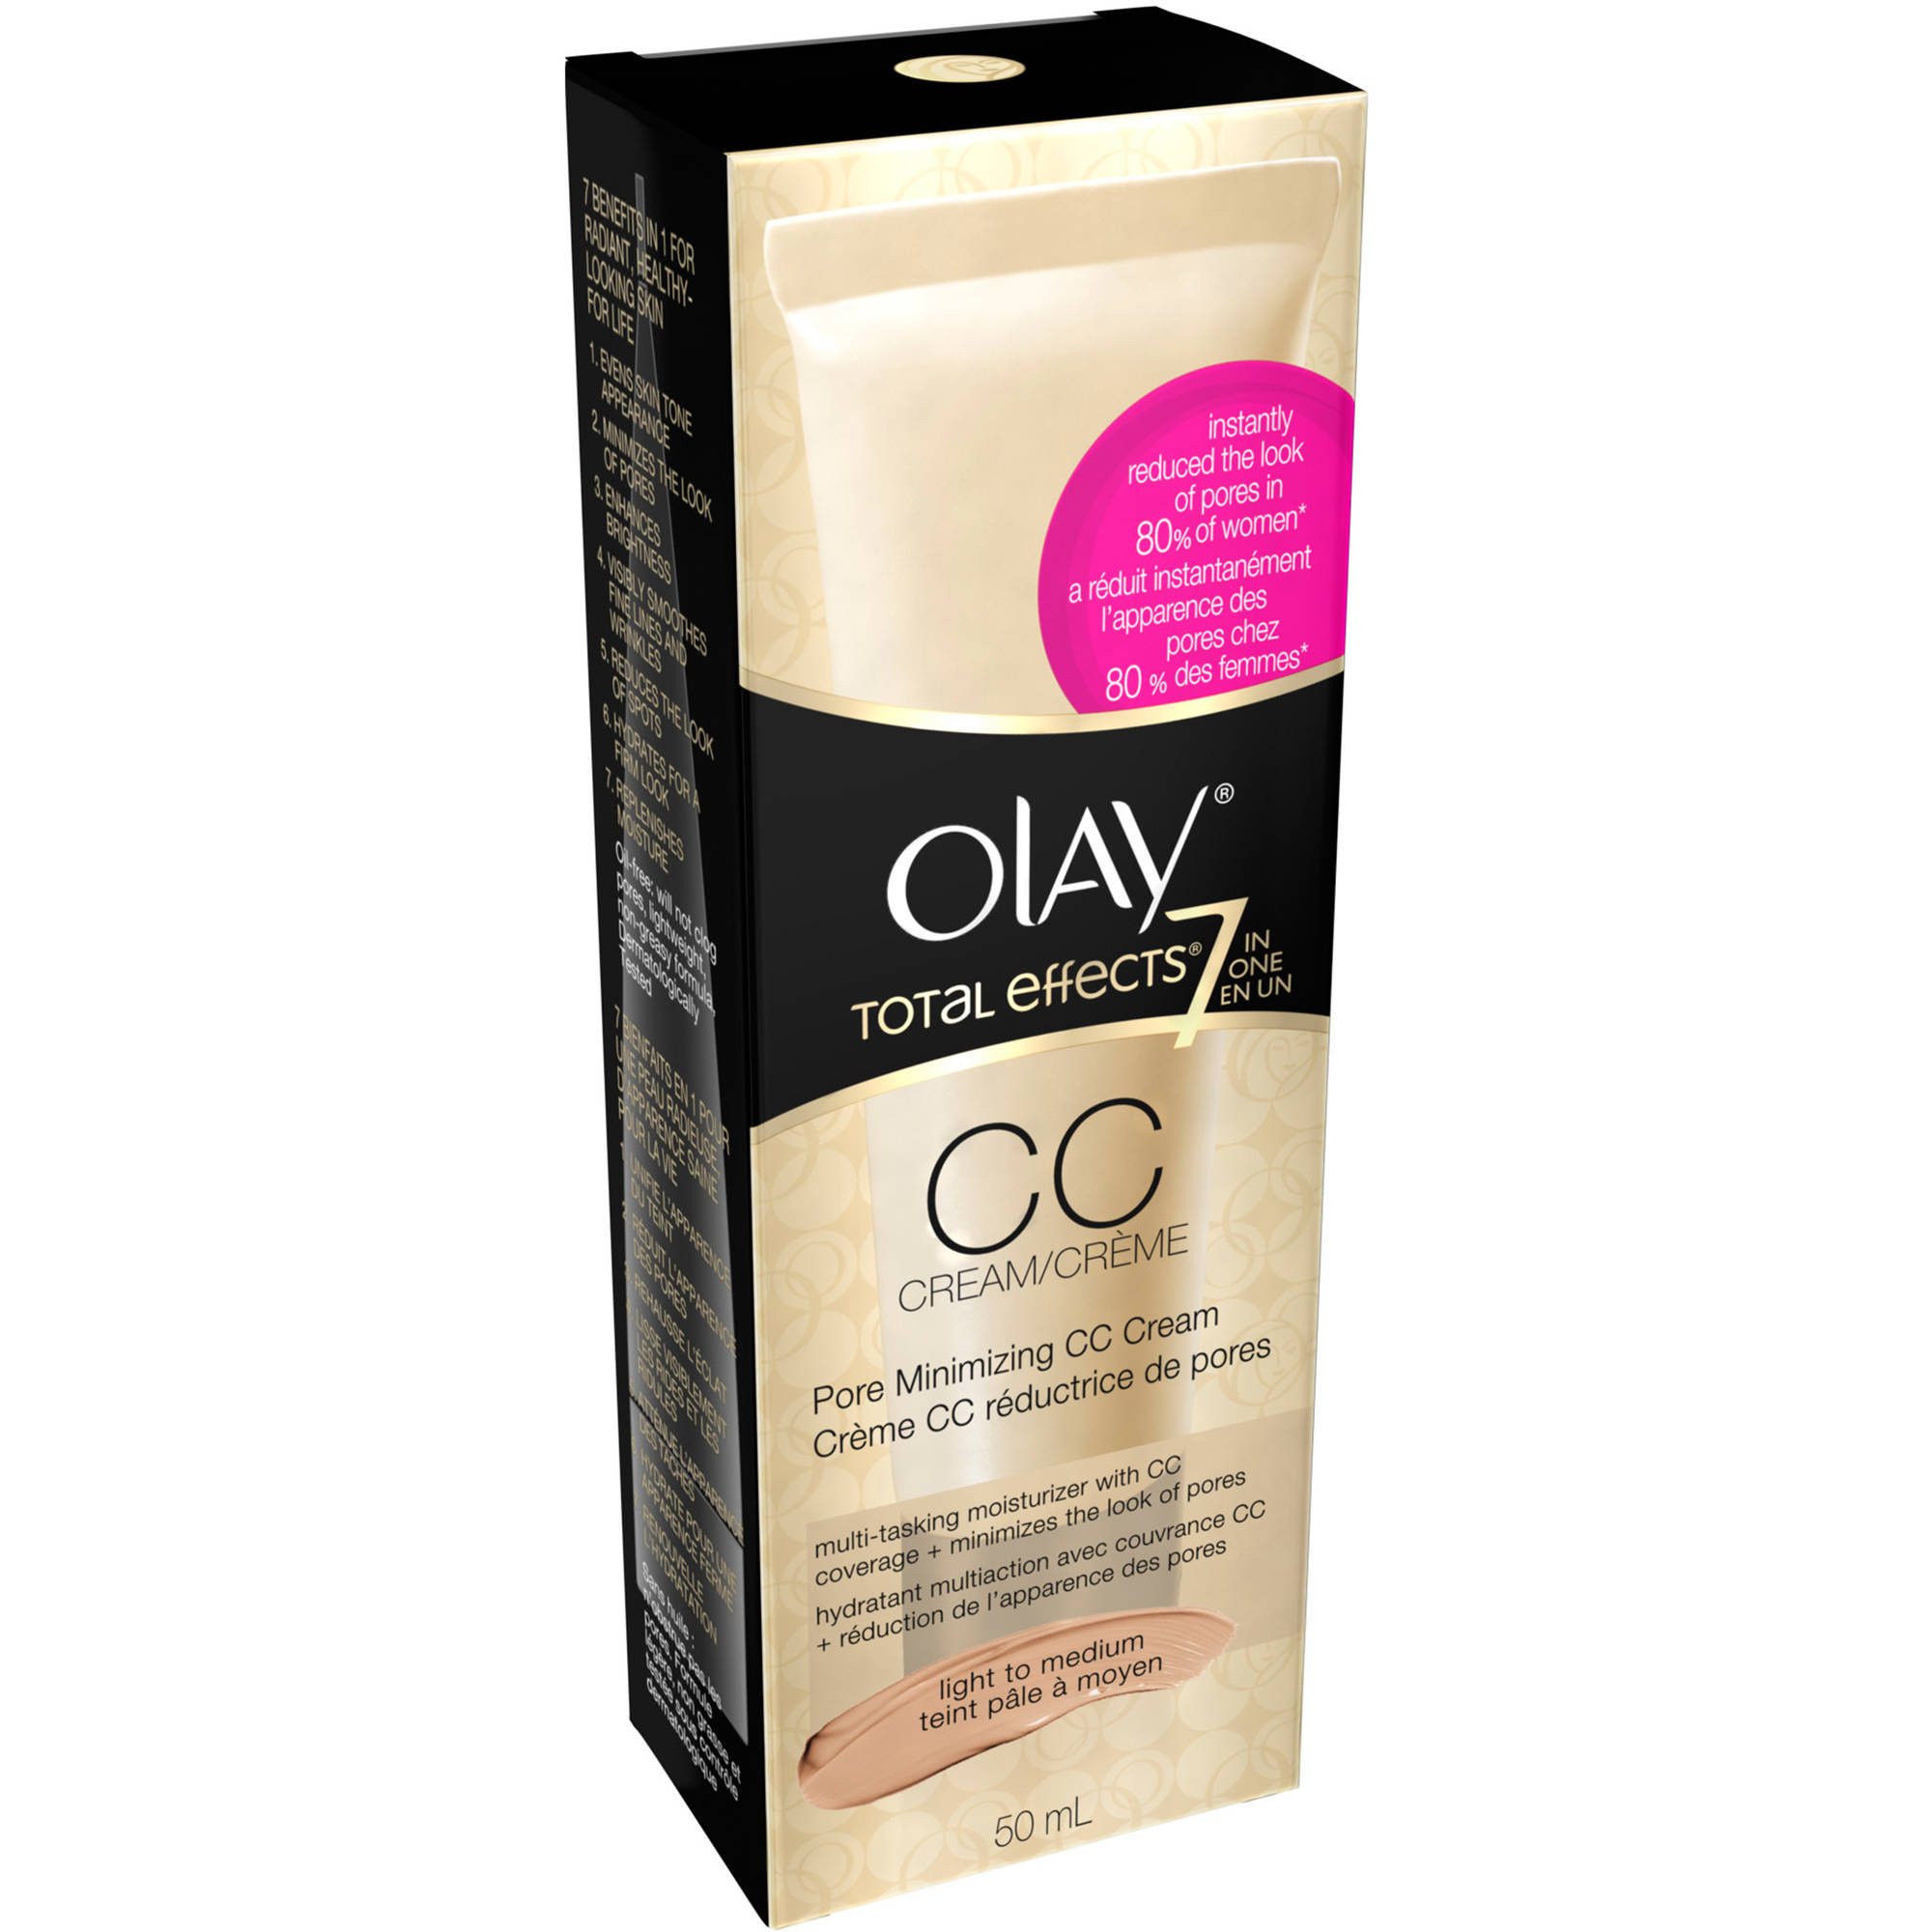 Olay Total Effects Pore Minimizing CC Cream, Light to Medium, 1.7 fl oz